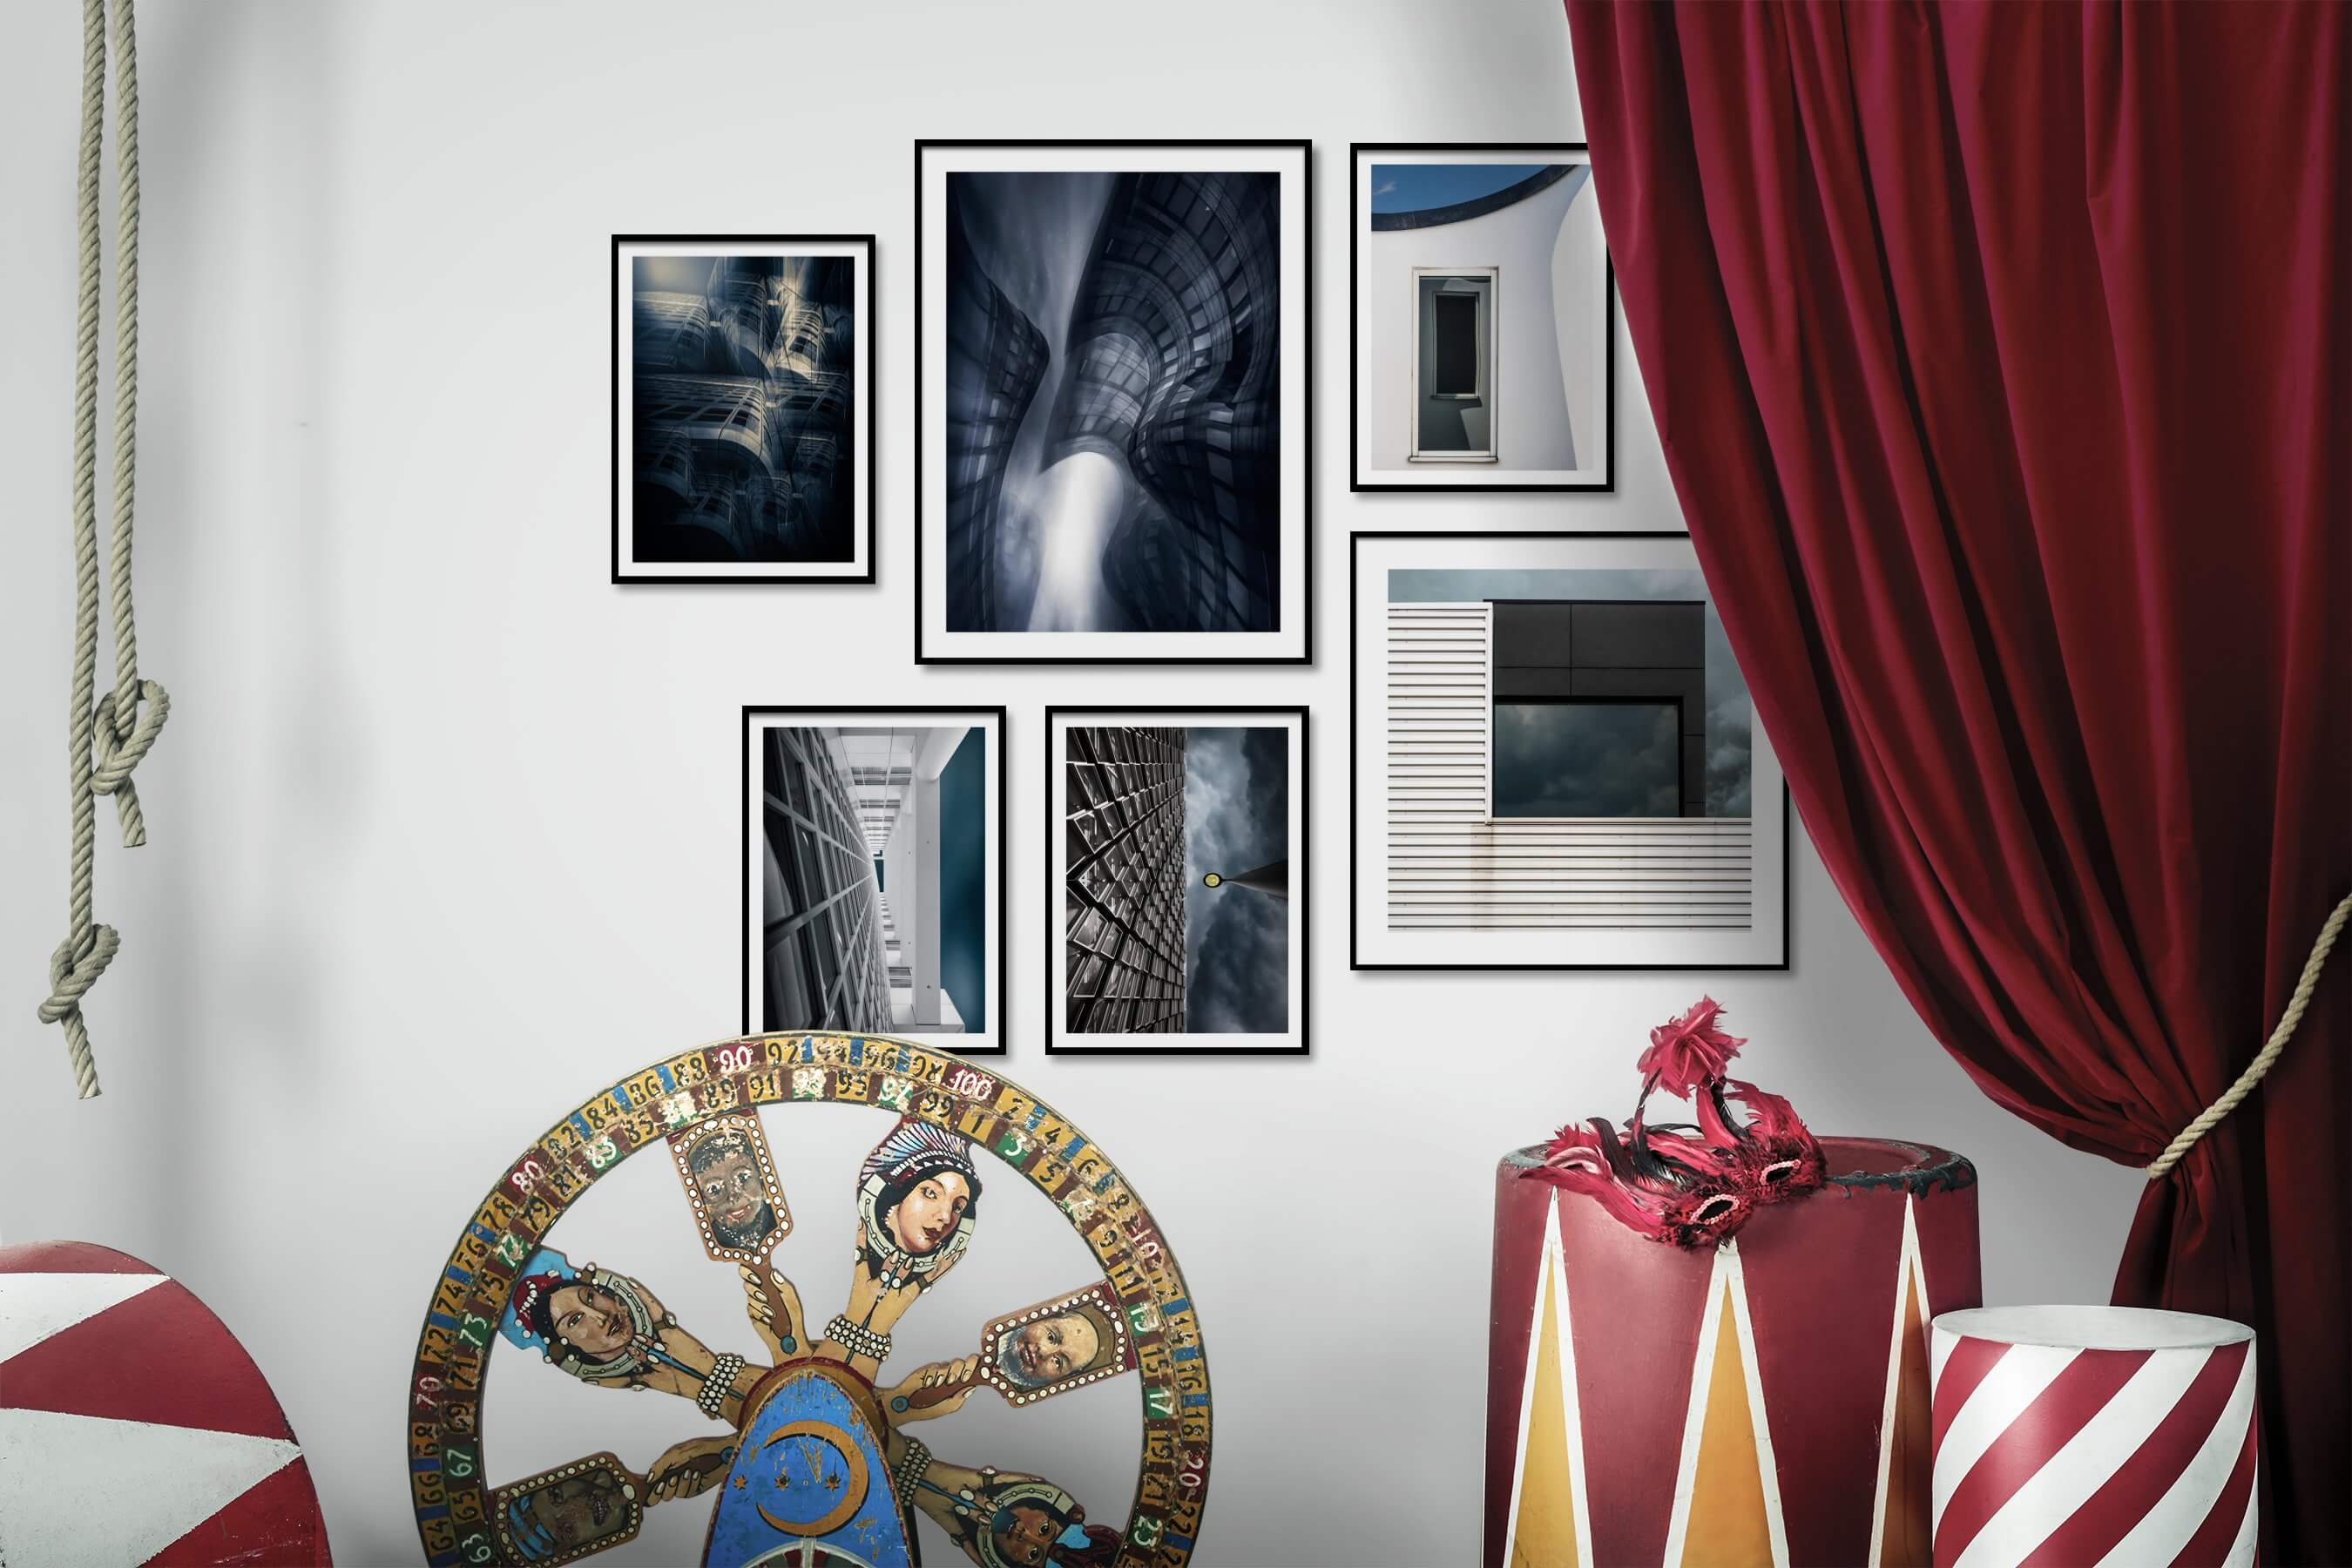 Gallery wall idea with six framed pictures arranged on a wall depicting For the Maximalist, For the Moderate, and City Life